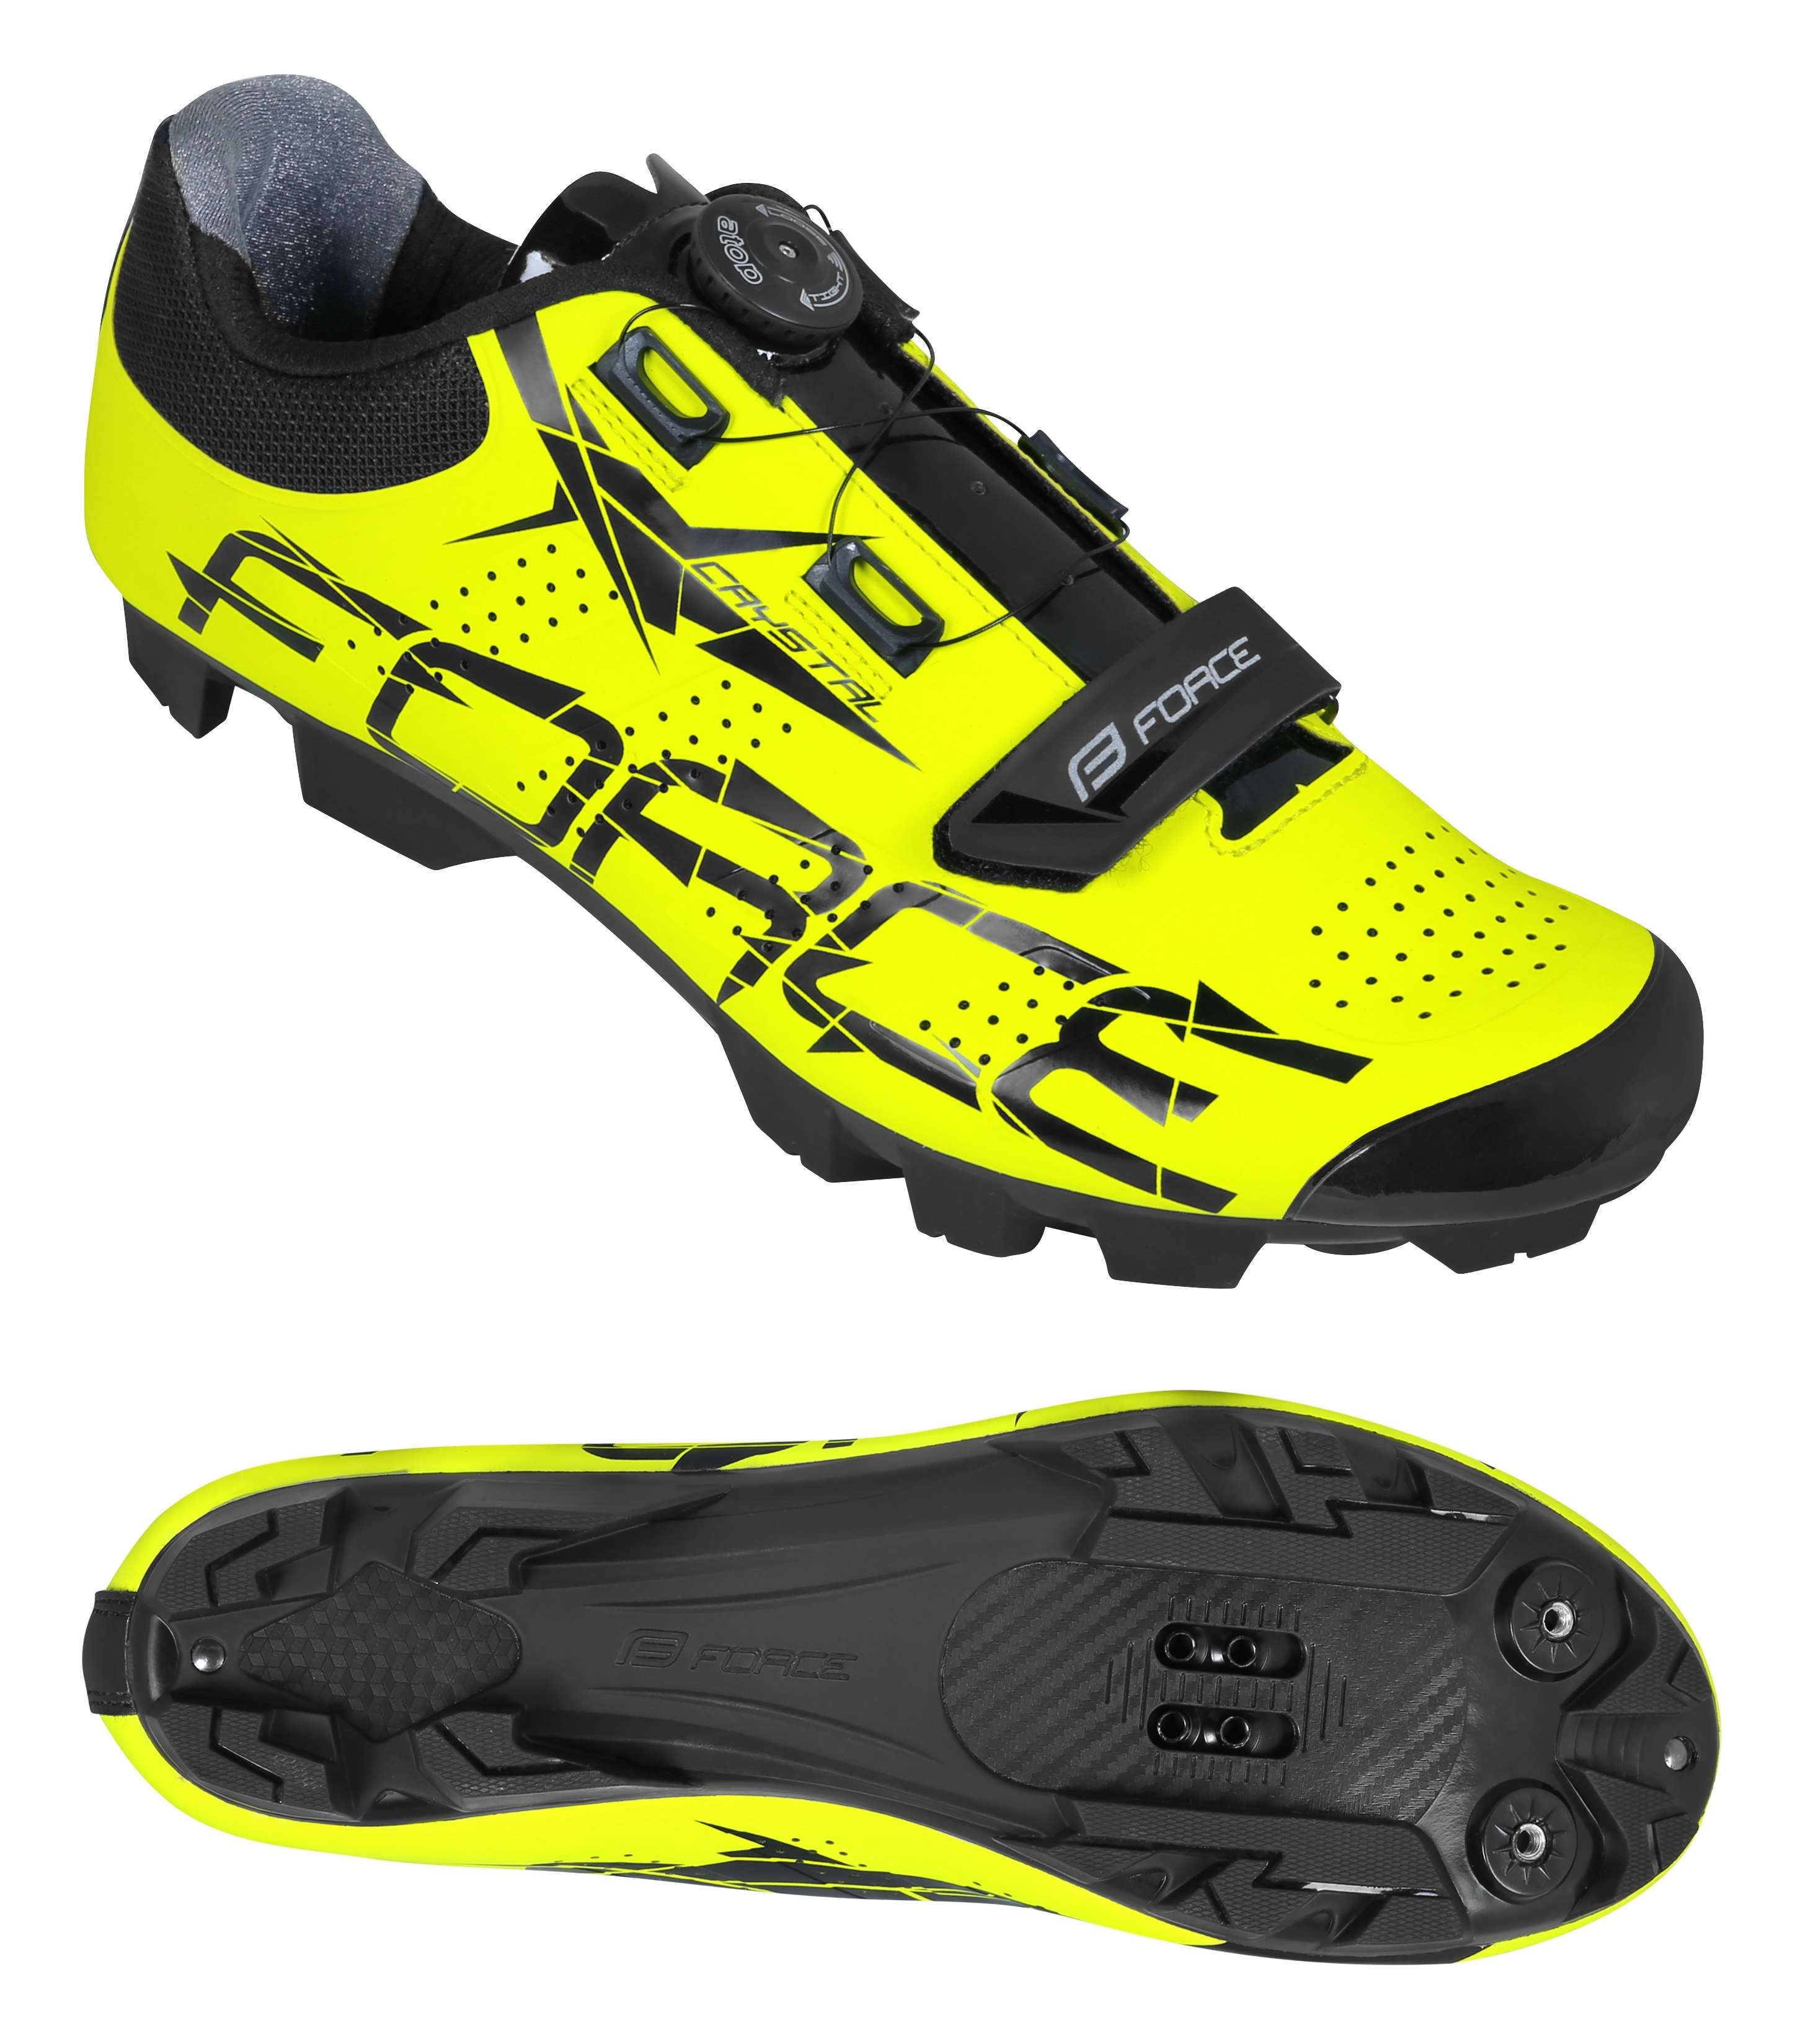 Tretry FORCE MTB CRYSTAL vel. 43, fluo